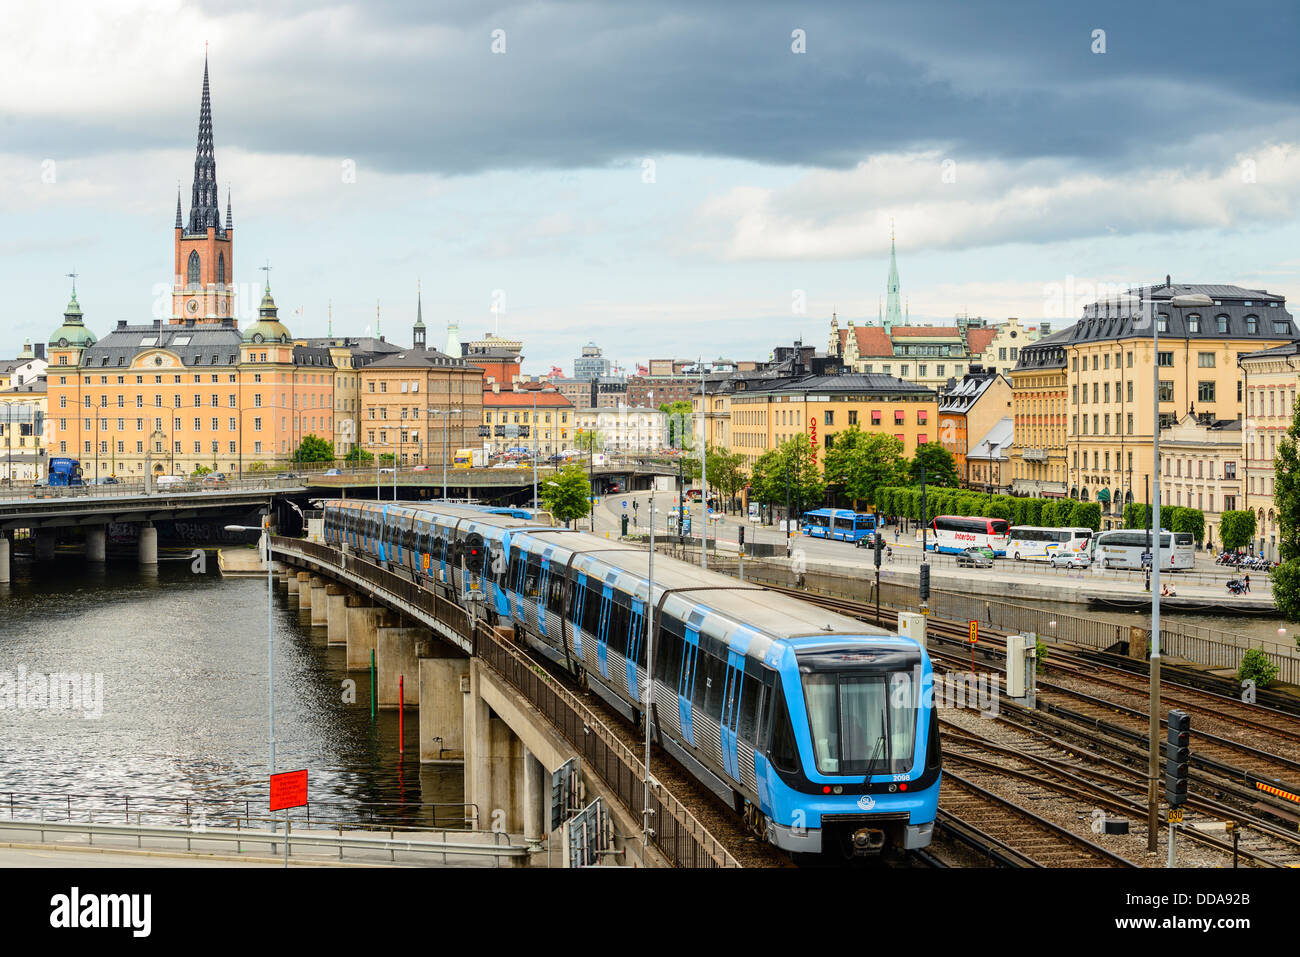 Metro (T-bana) train in Stockholm Sweden - Stock Image